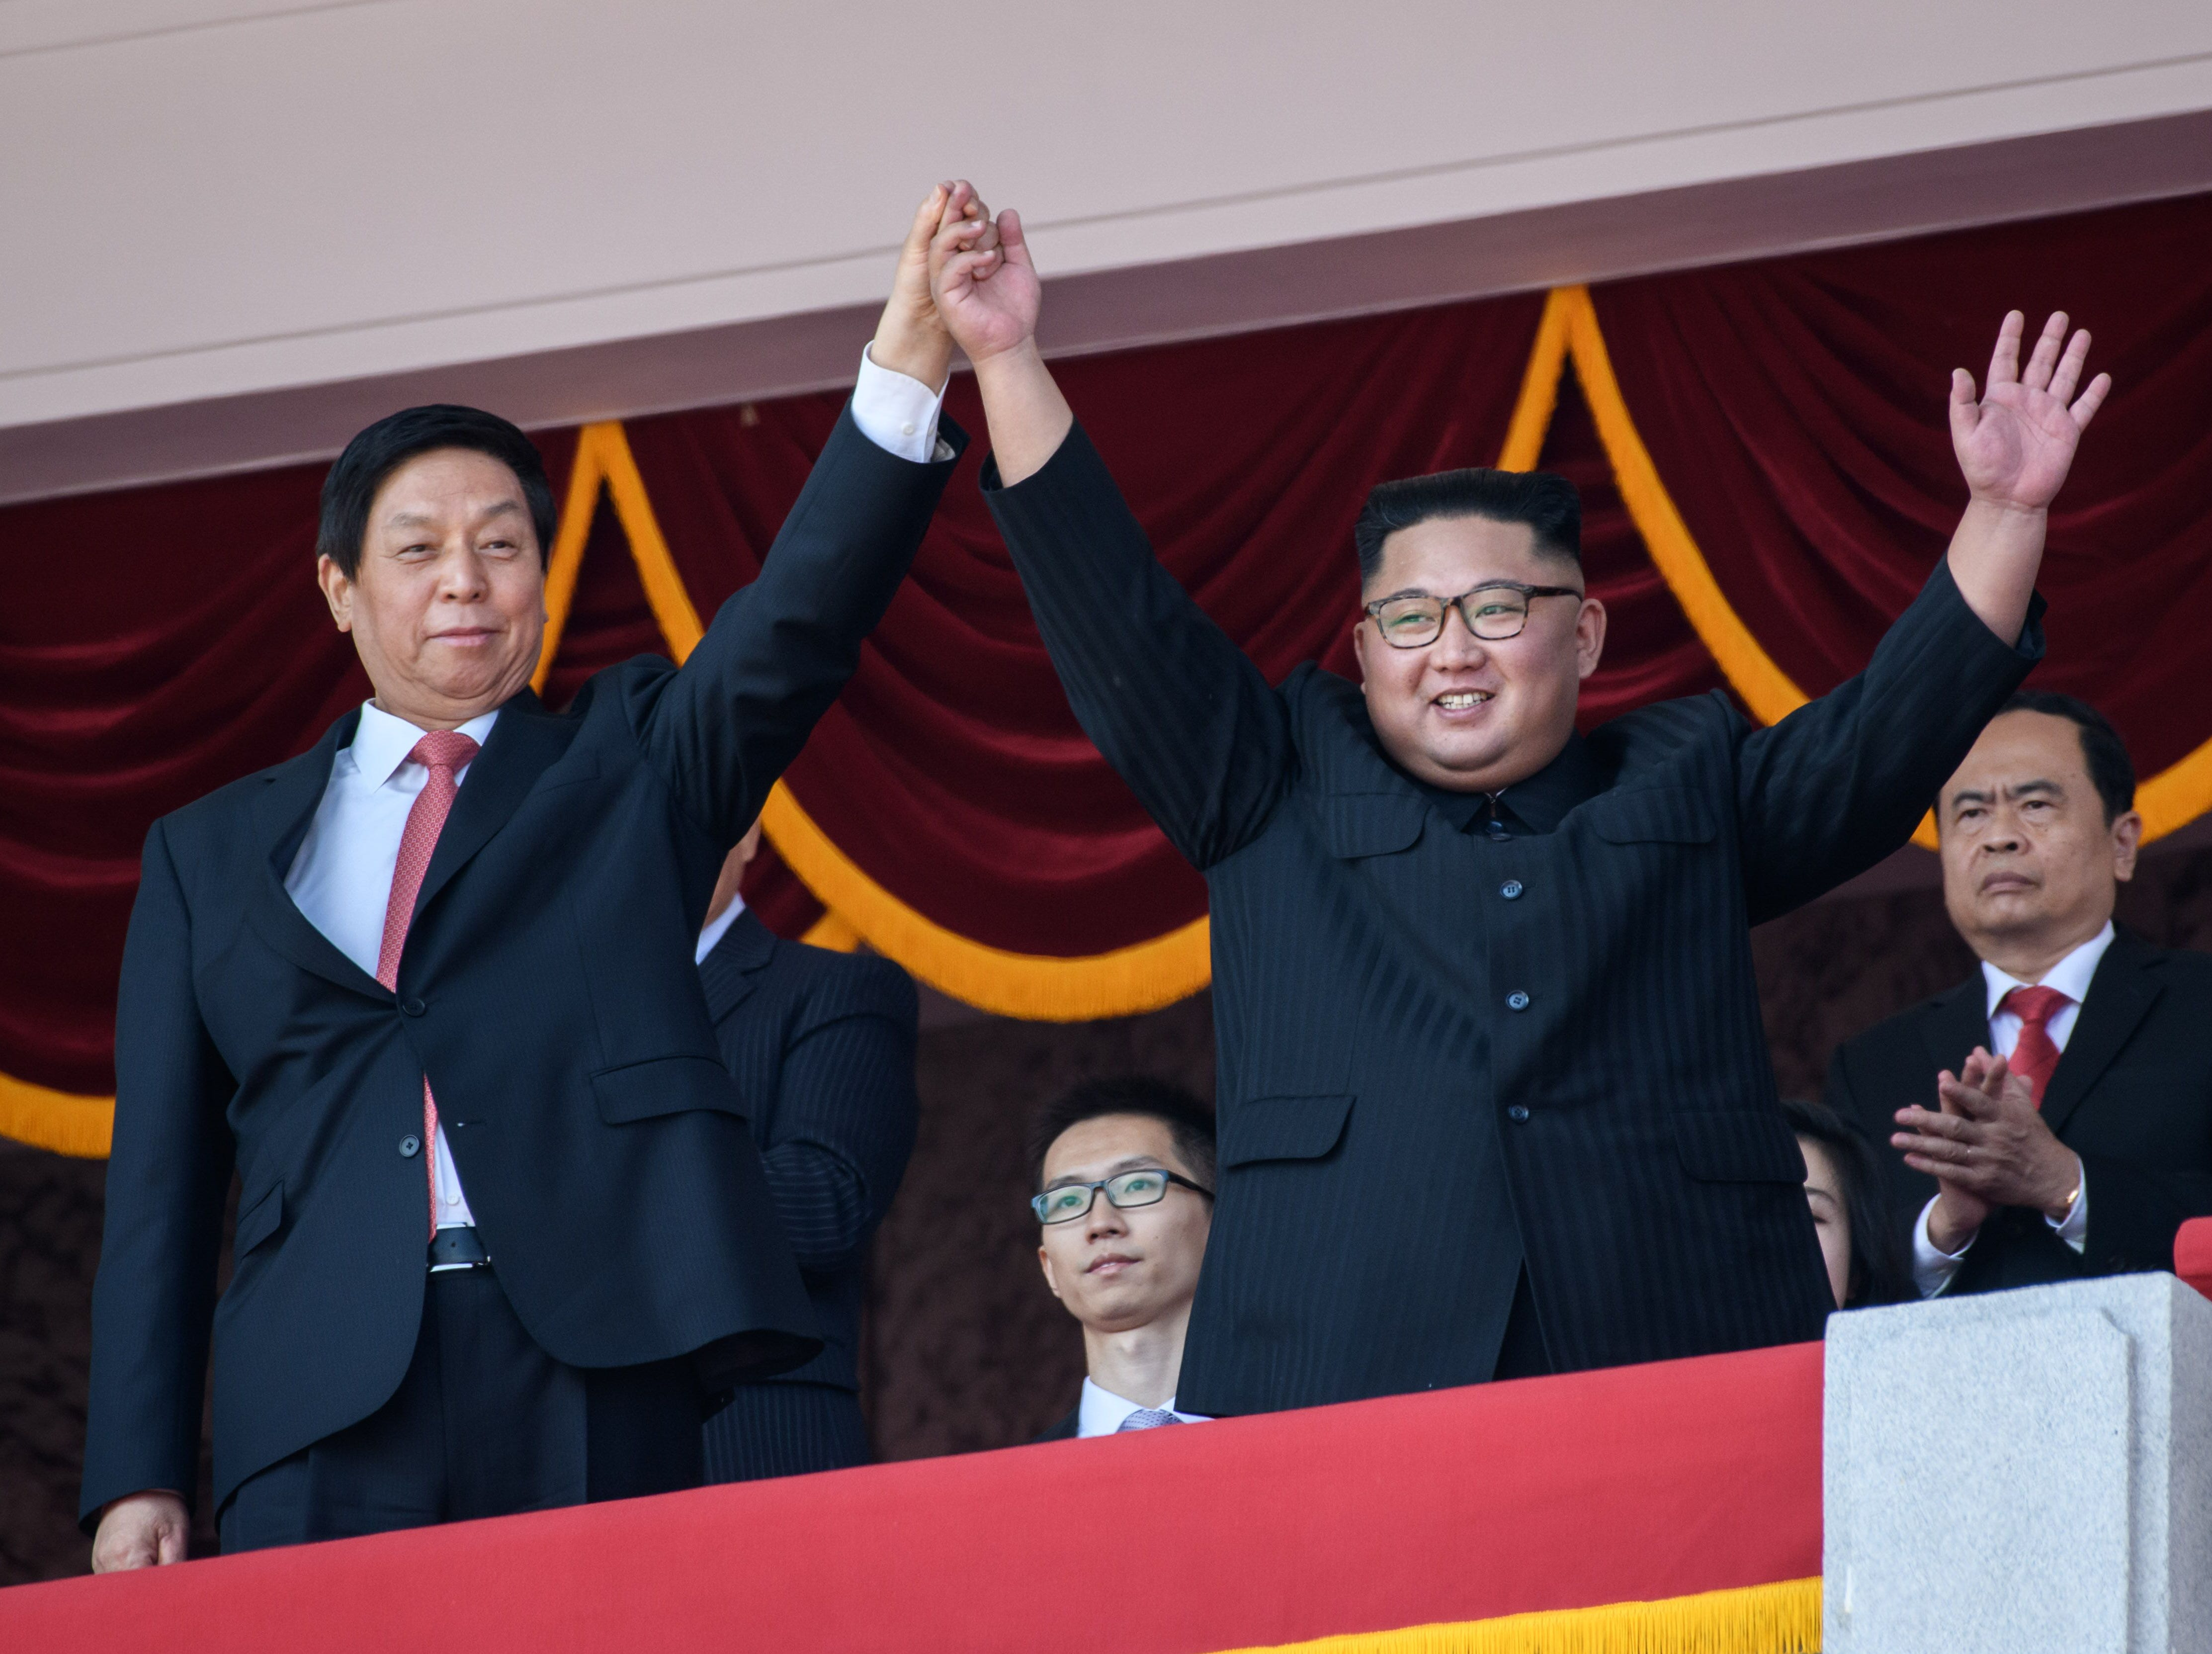 North Korea's leader Kim Jong Un, right, waves with China's Chairman of the Standing Committee of the National People's Congress Li Zhanshu from a balcony of the Grand People's House on Kim Il Sung square following military parade and mass rally on Sept. 9, 2018.